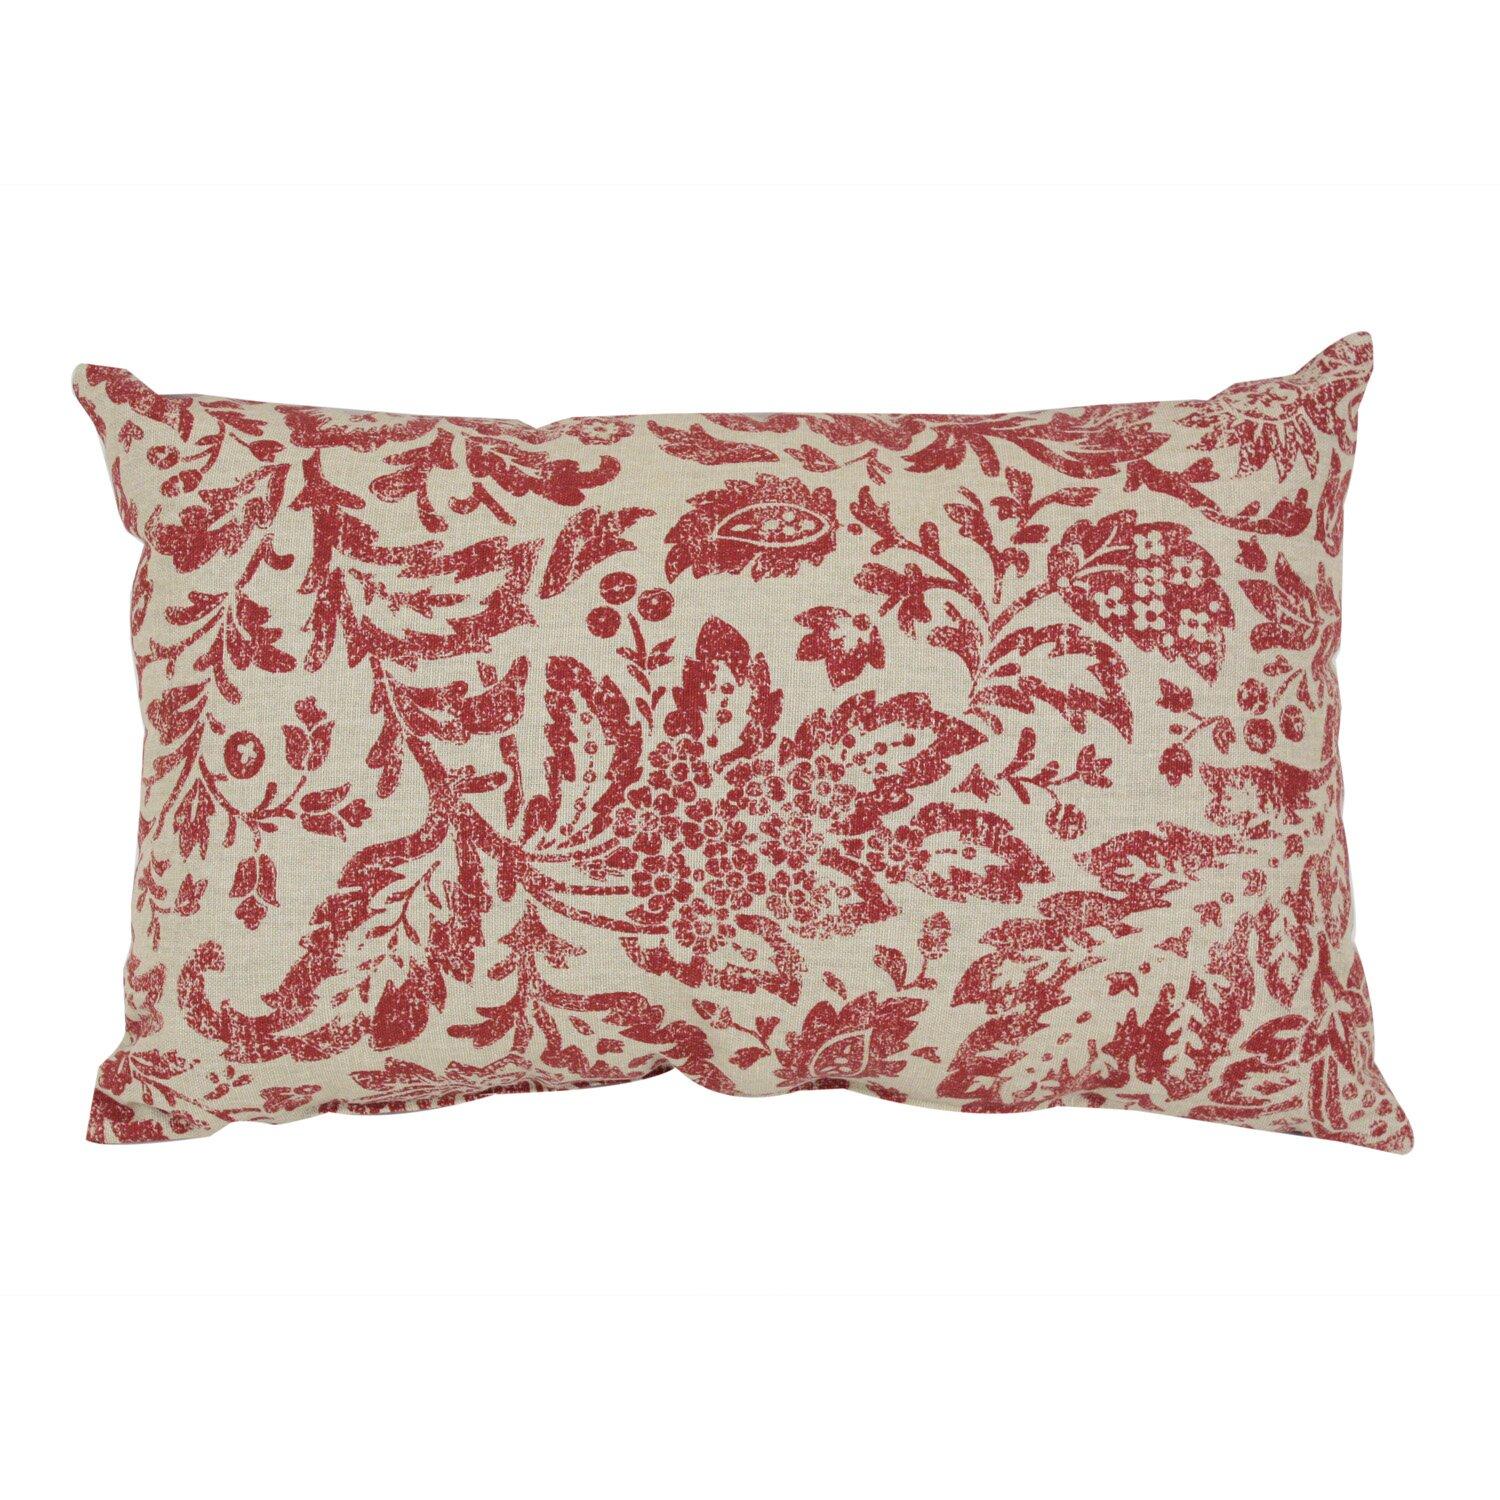 Throw Pillows Damask : August Grove Elma Damask Throw Pillow & Reviews Wayfair